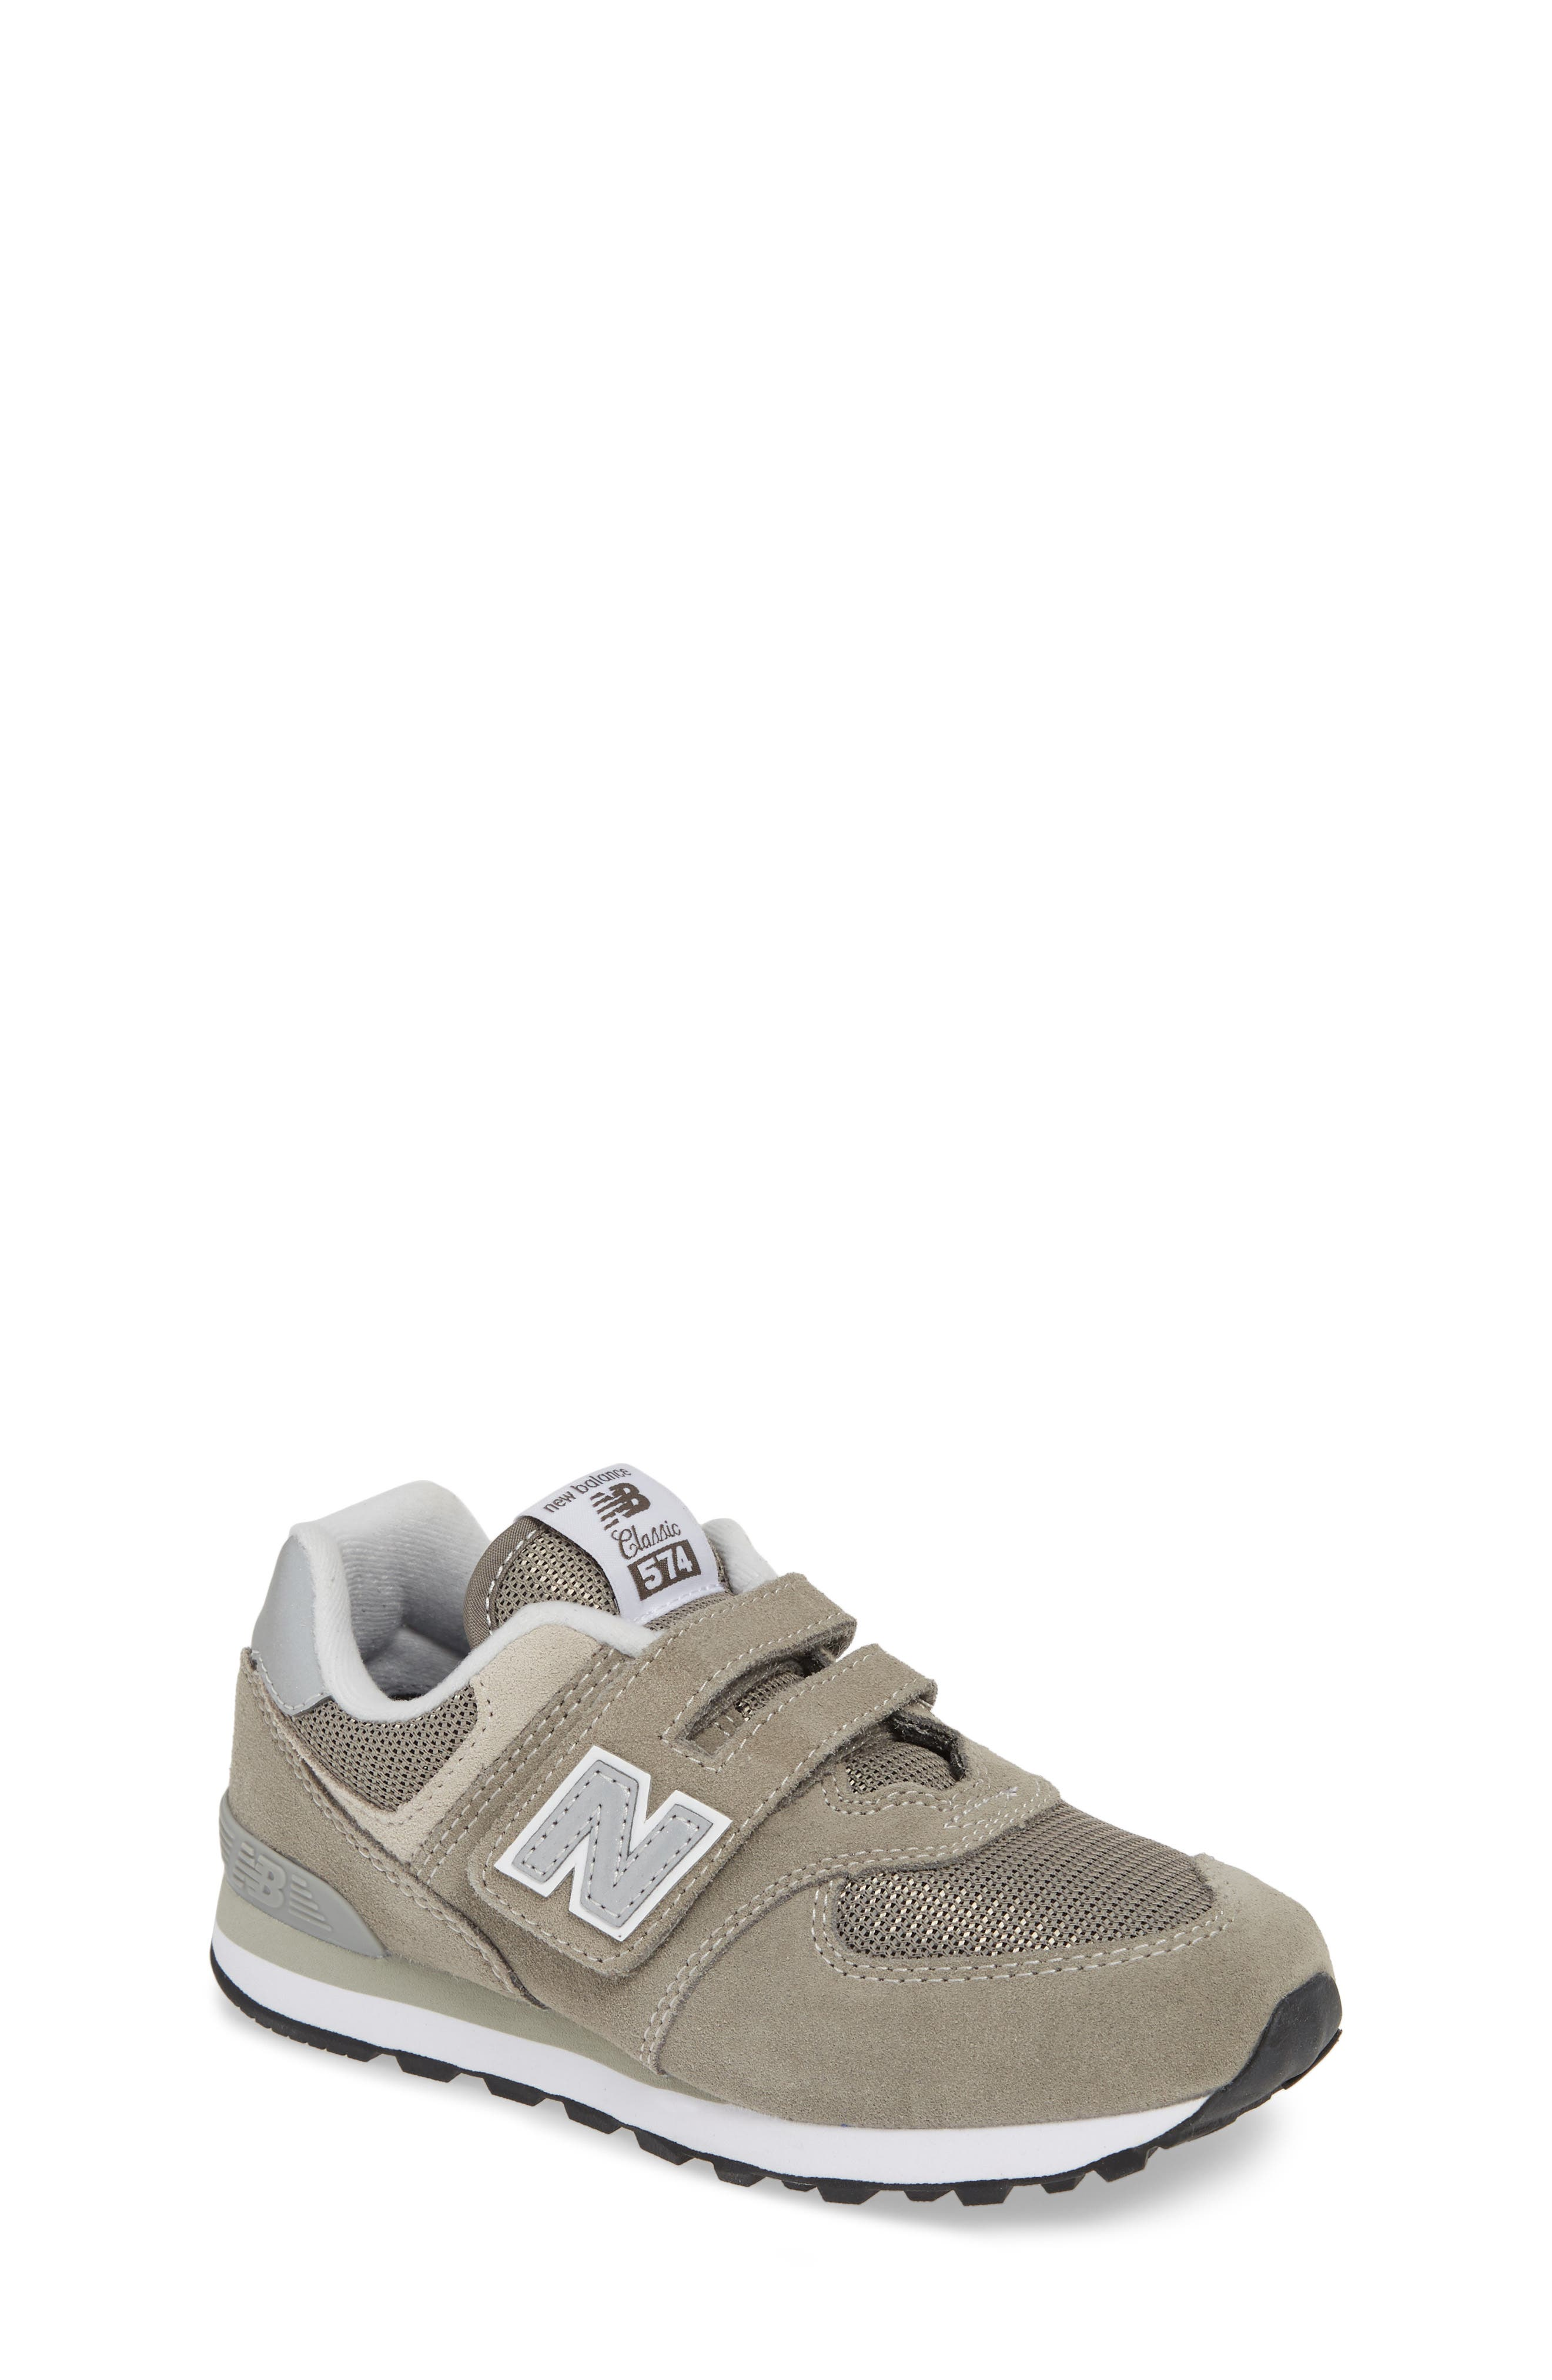 NEW BALANCE 574 Retro Surf Sneaker, Main, color, GREY